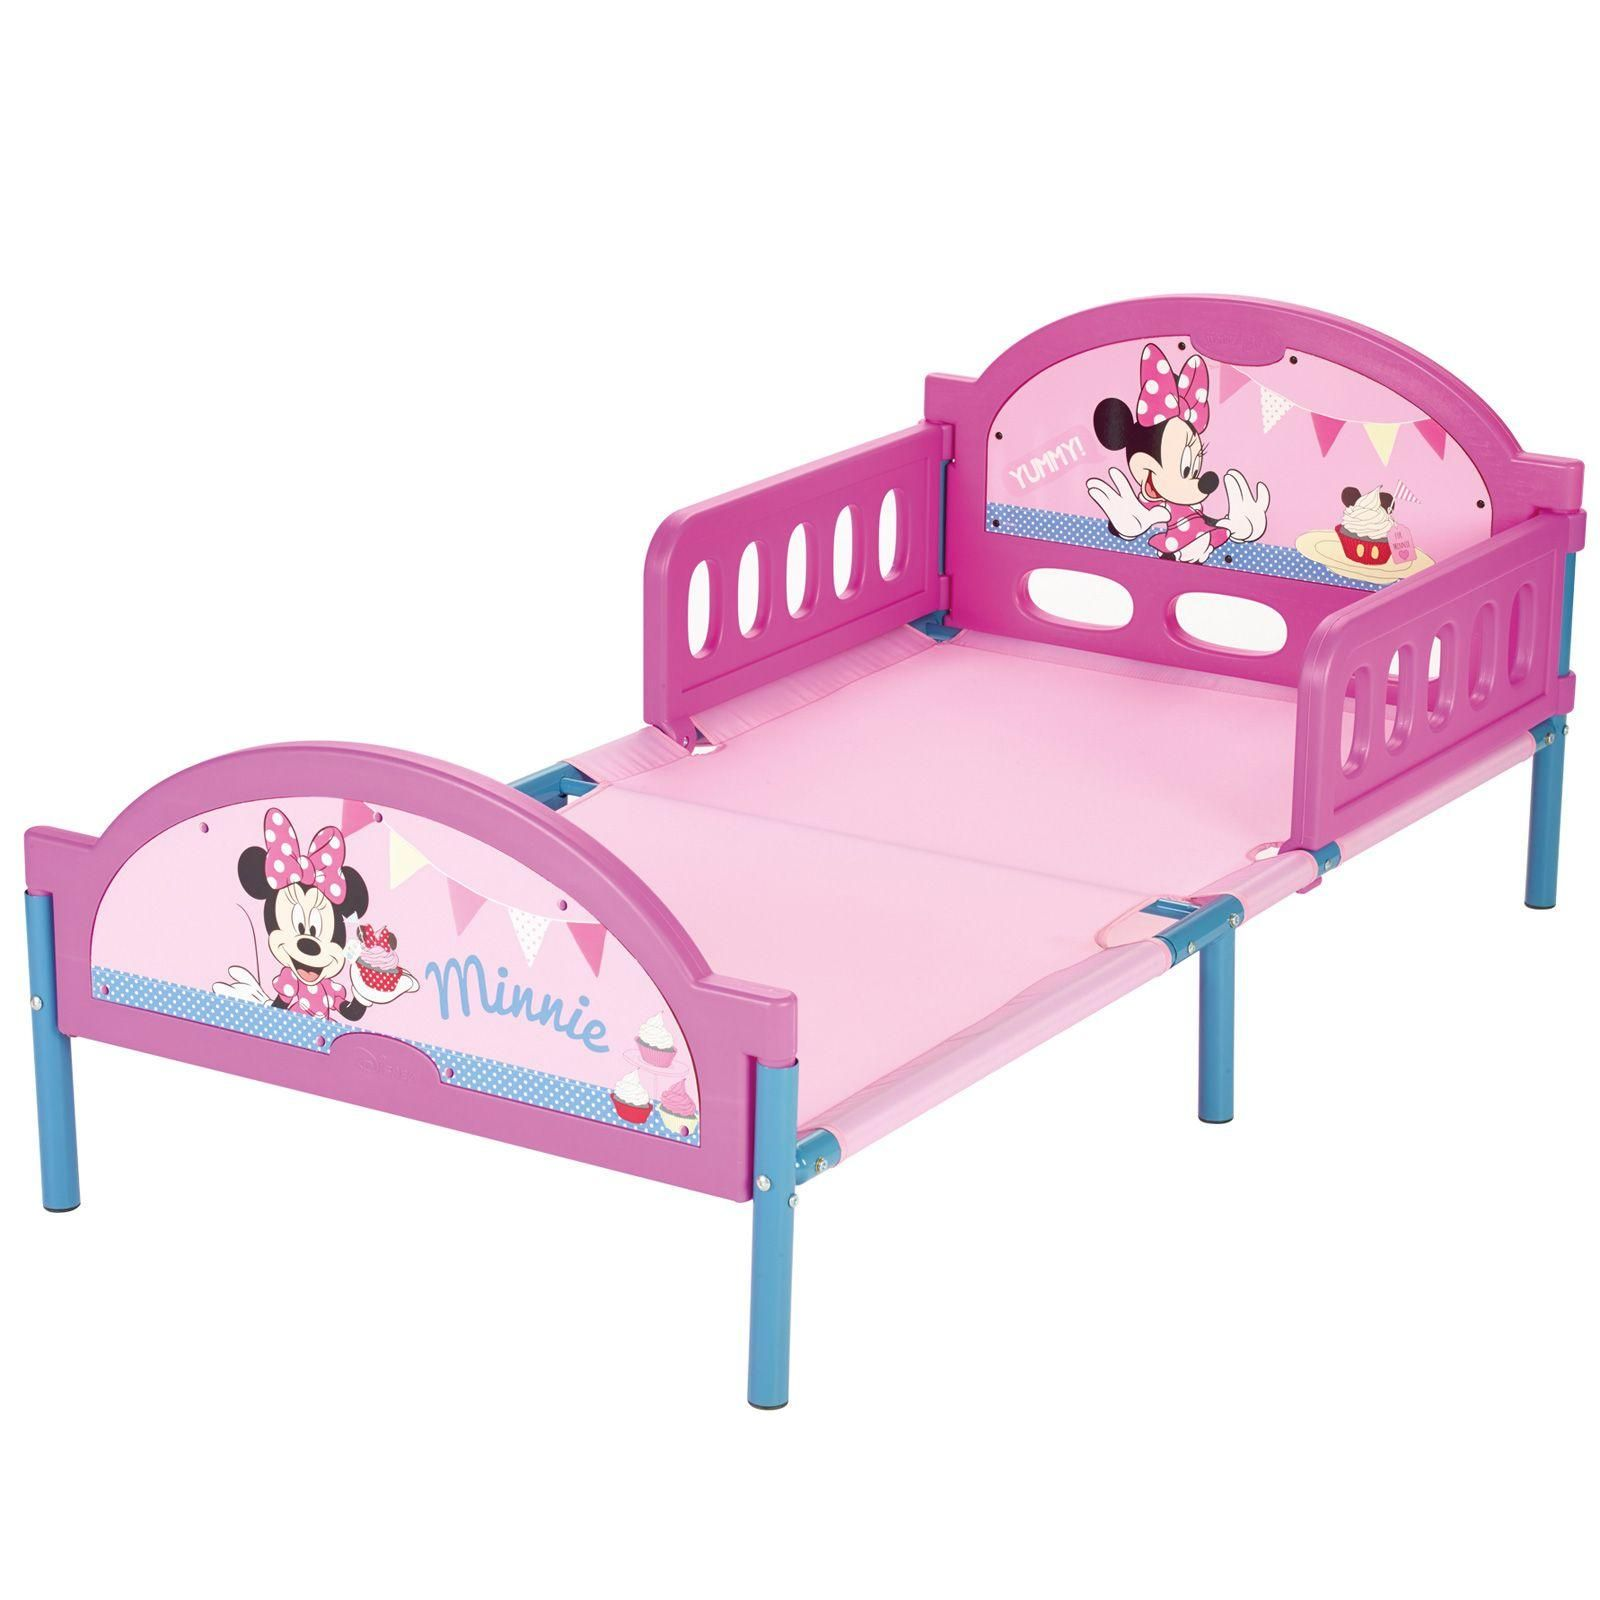 minnie mouse kleinkind bett luxus matress neu offiziell ebay. Black Bedroom Furniture Sets. Home Design Ideas